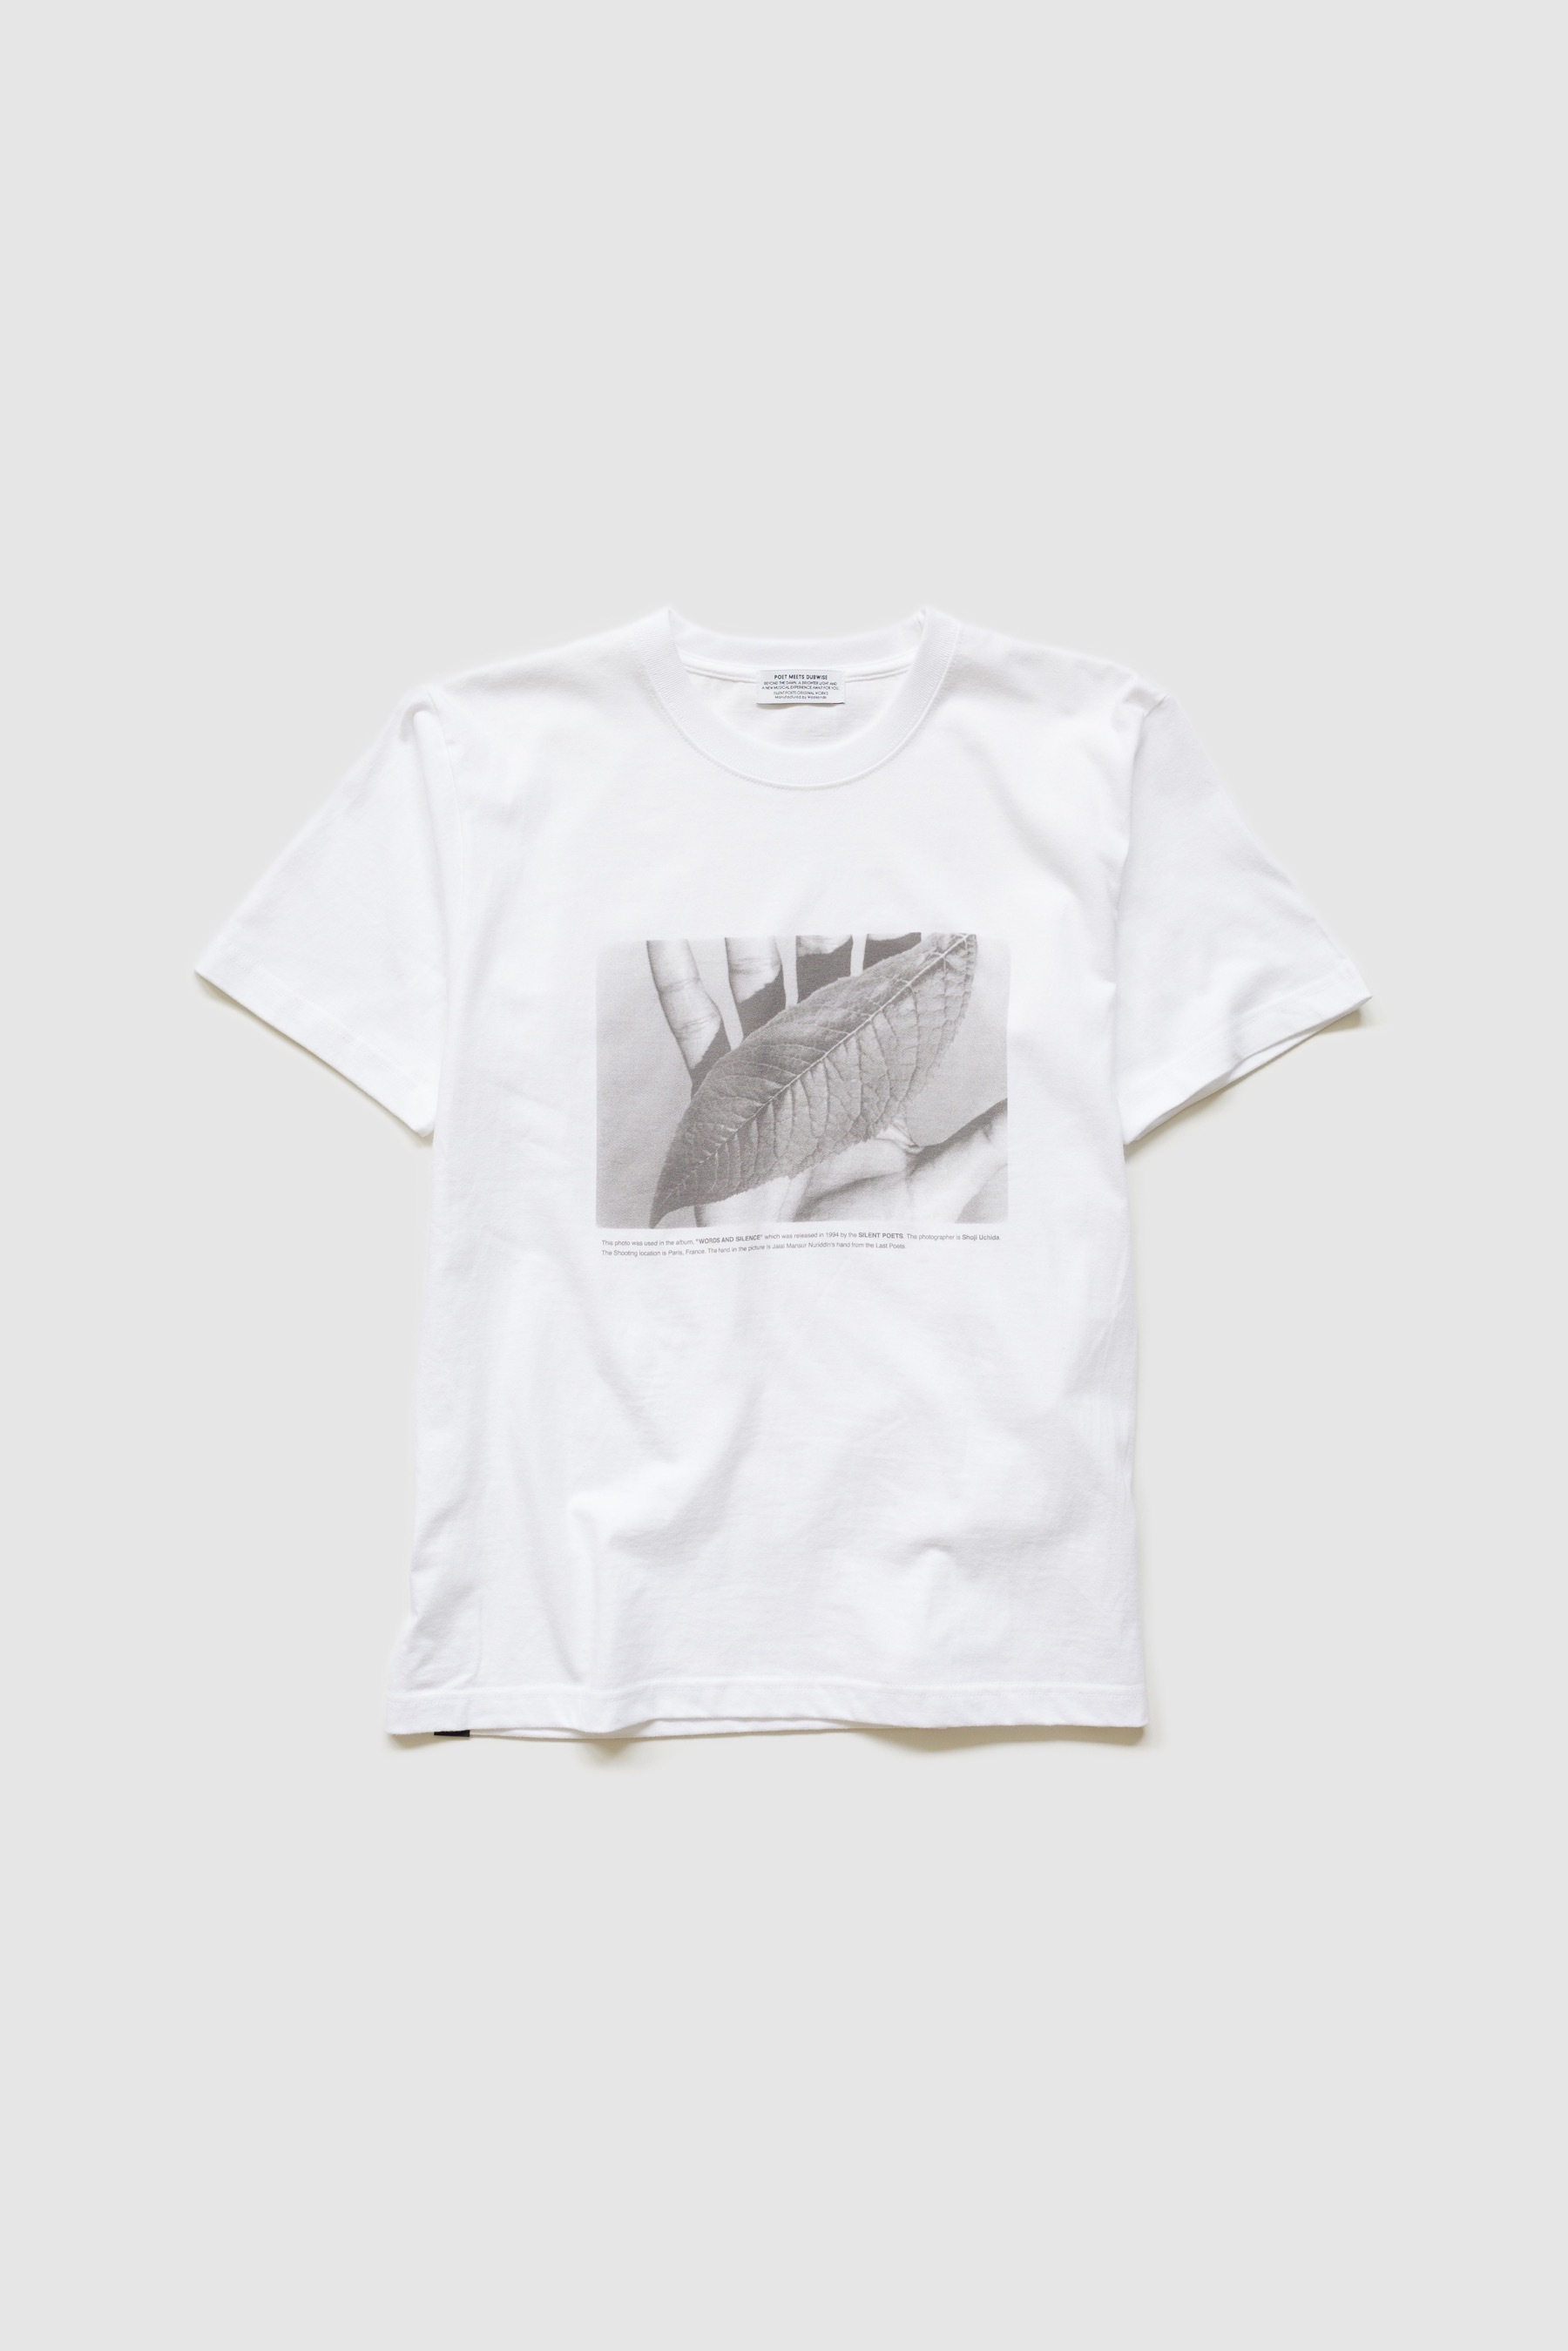 【POET MEETS DUBWISE(ポエトミーツダブワイズ)】 WORDS AND SILENCE T-SHIRTS